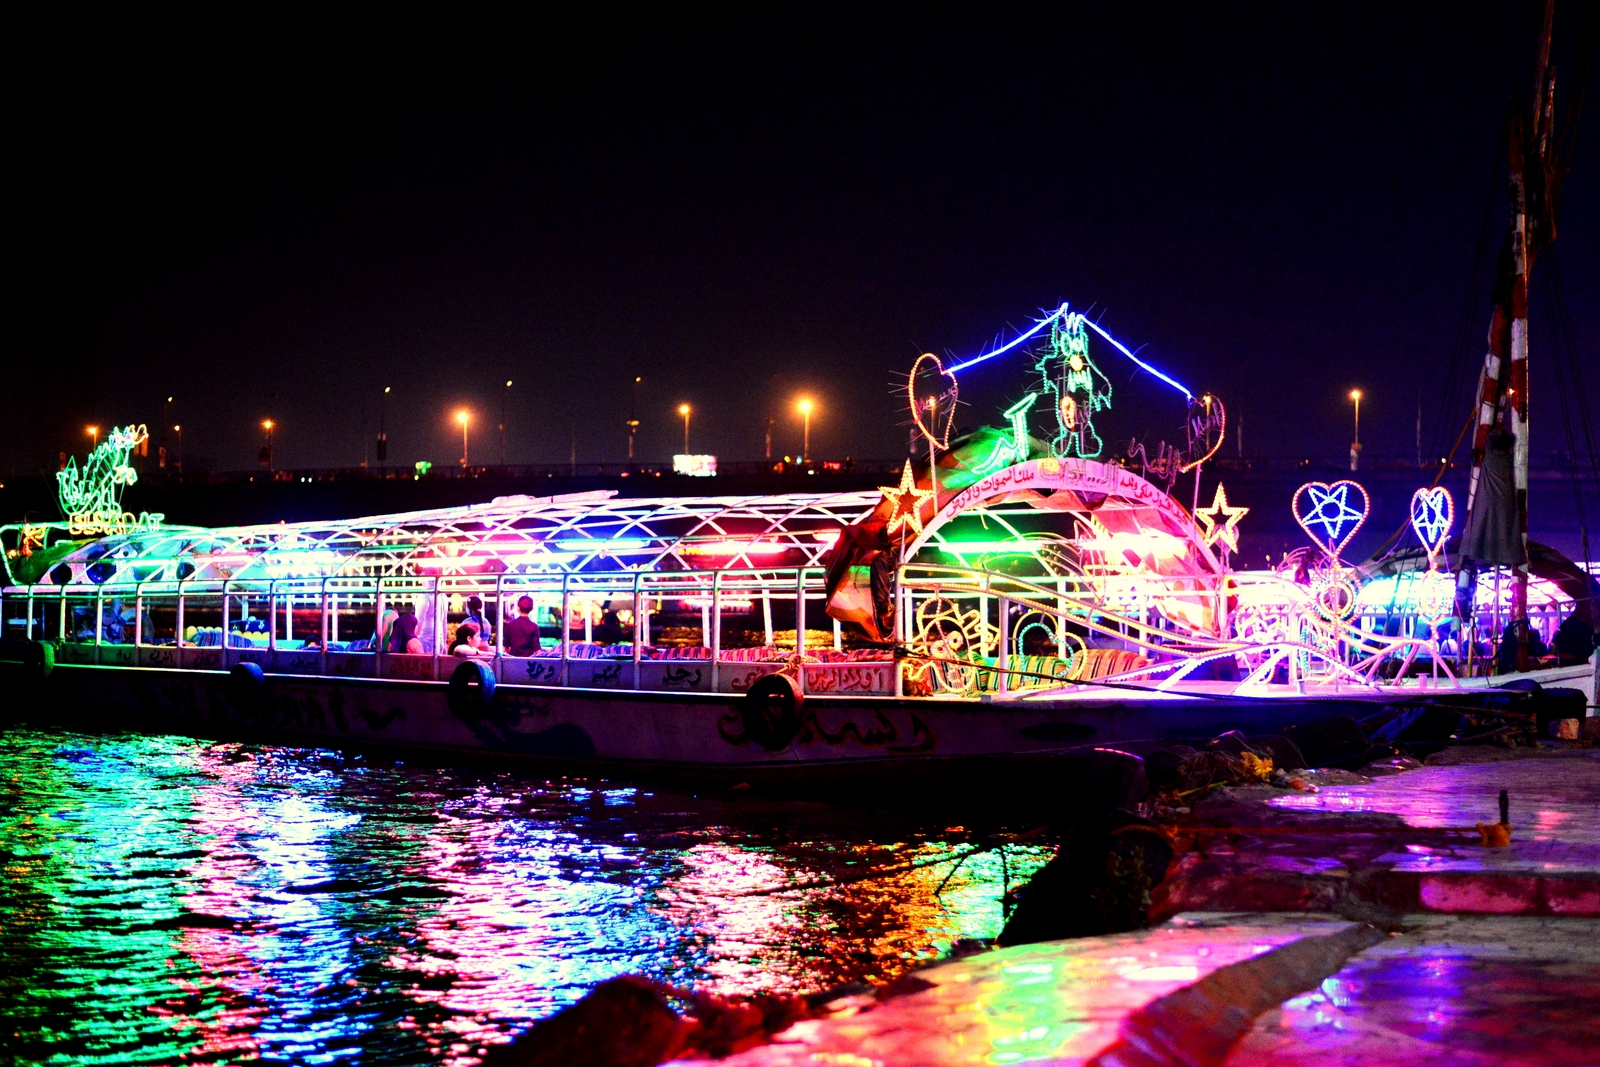 Hearts, stars and teddybears are but a few of the neonlight decorations of the boats. (Photo by Aaron T. Rose)